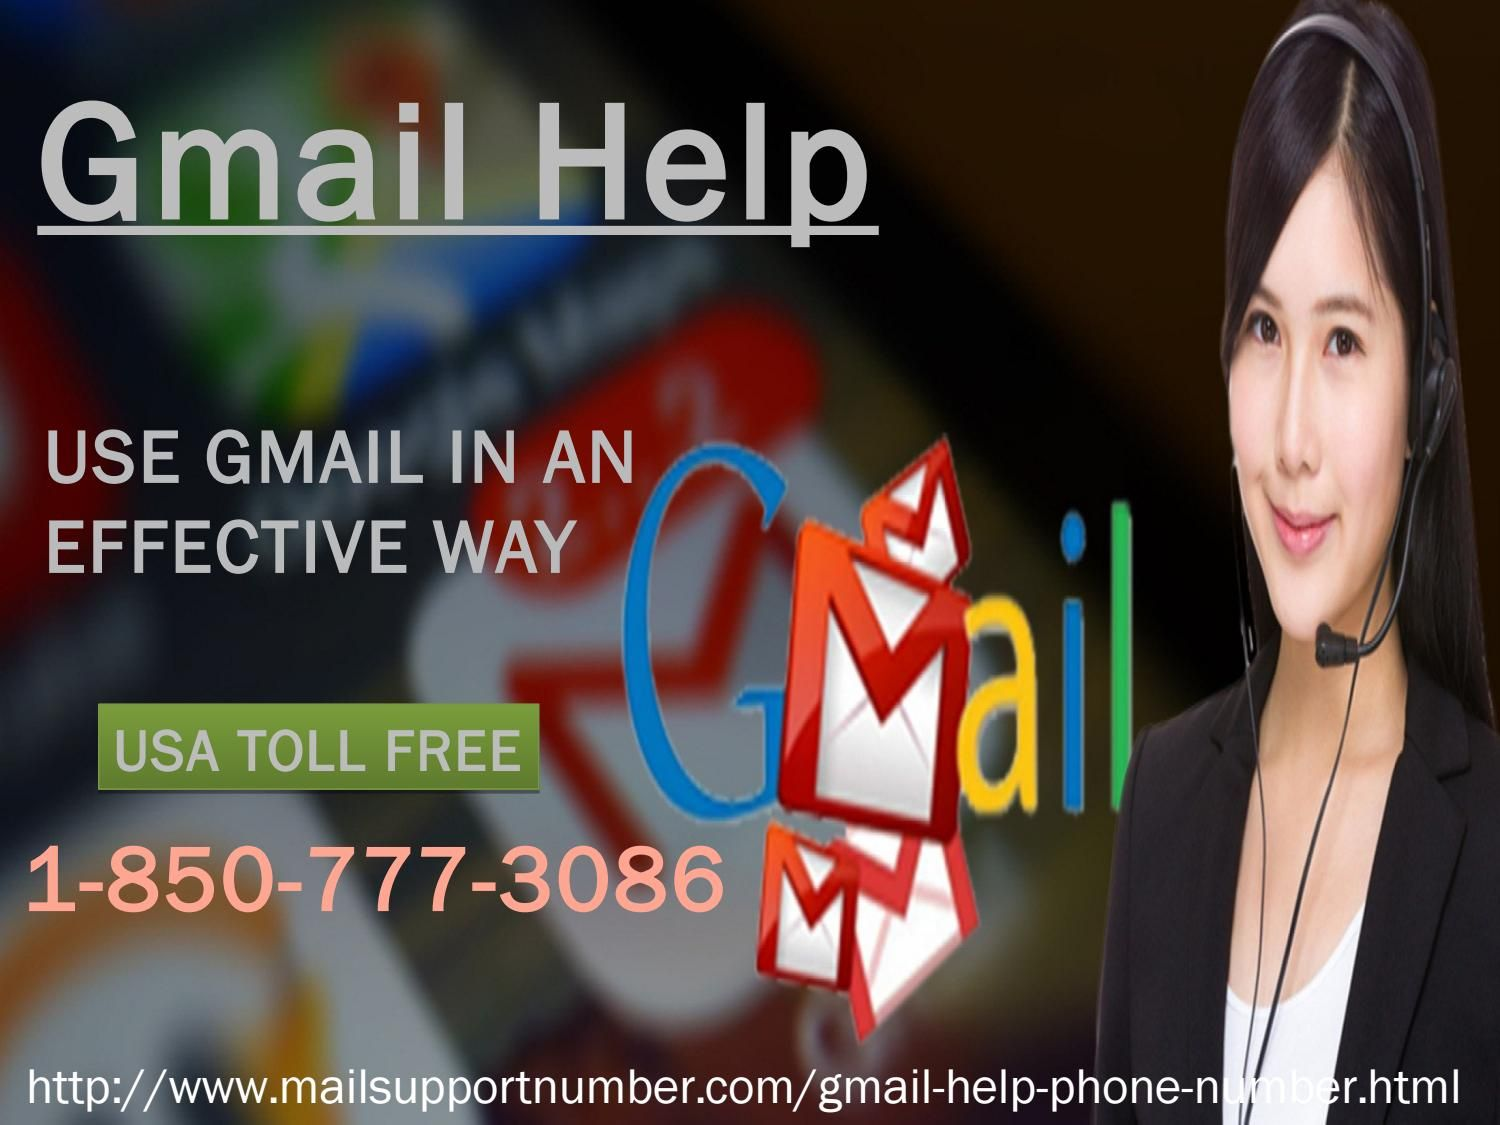 GmailHelp 18507773086 the best way to connect with